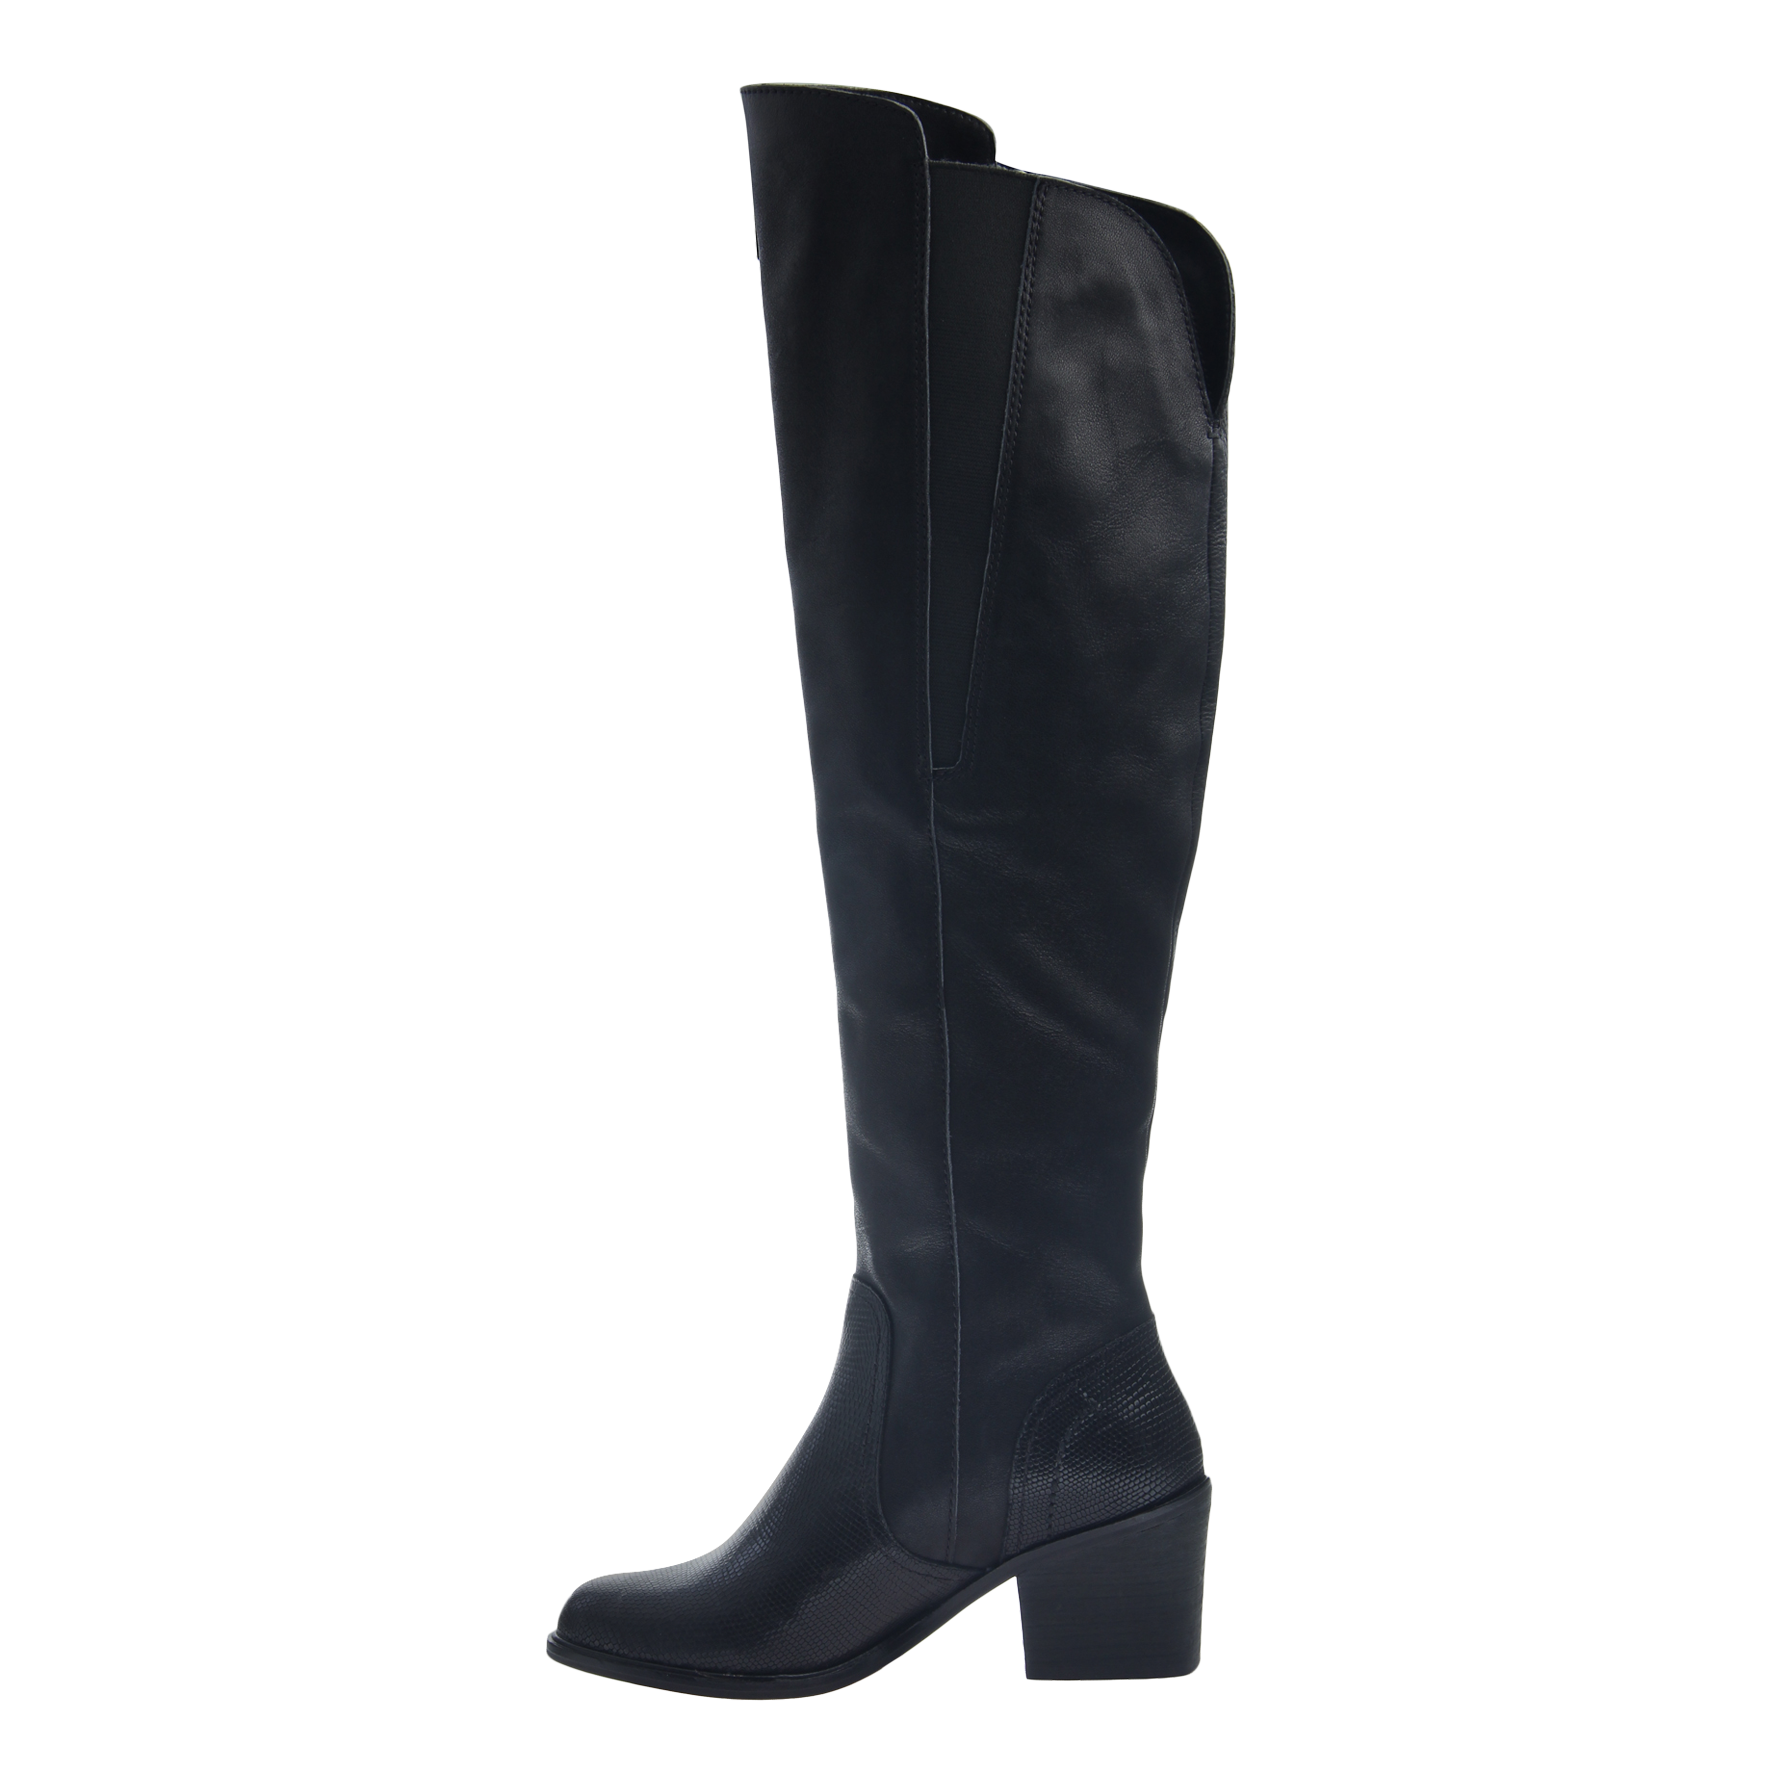 Womens tall over the knee boot Clooney in black inside view